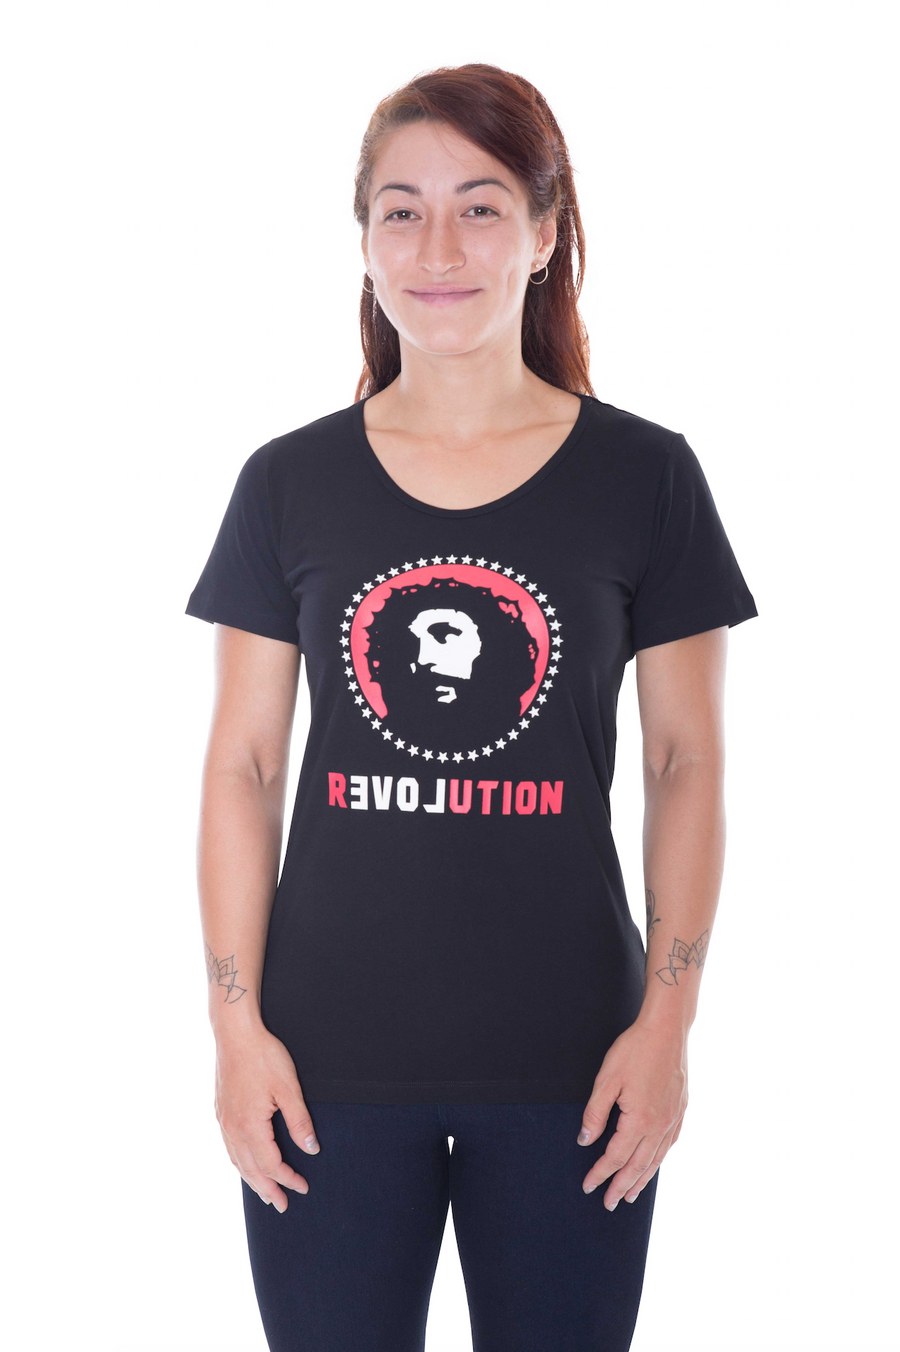 Love Revolution black t-shirt - women's organic fairtrade